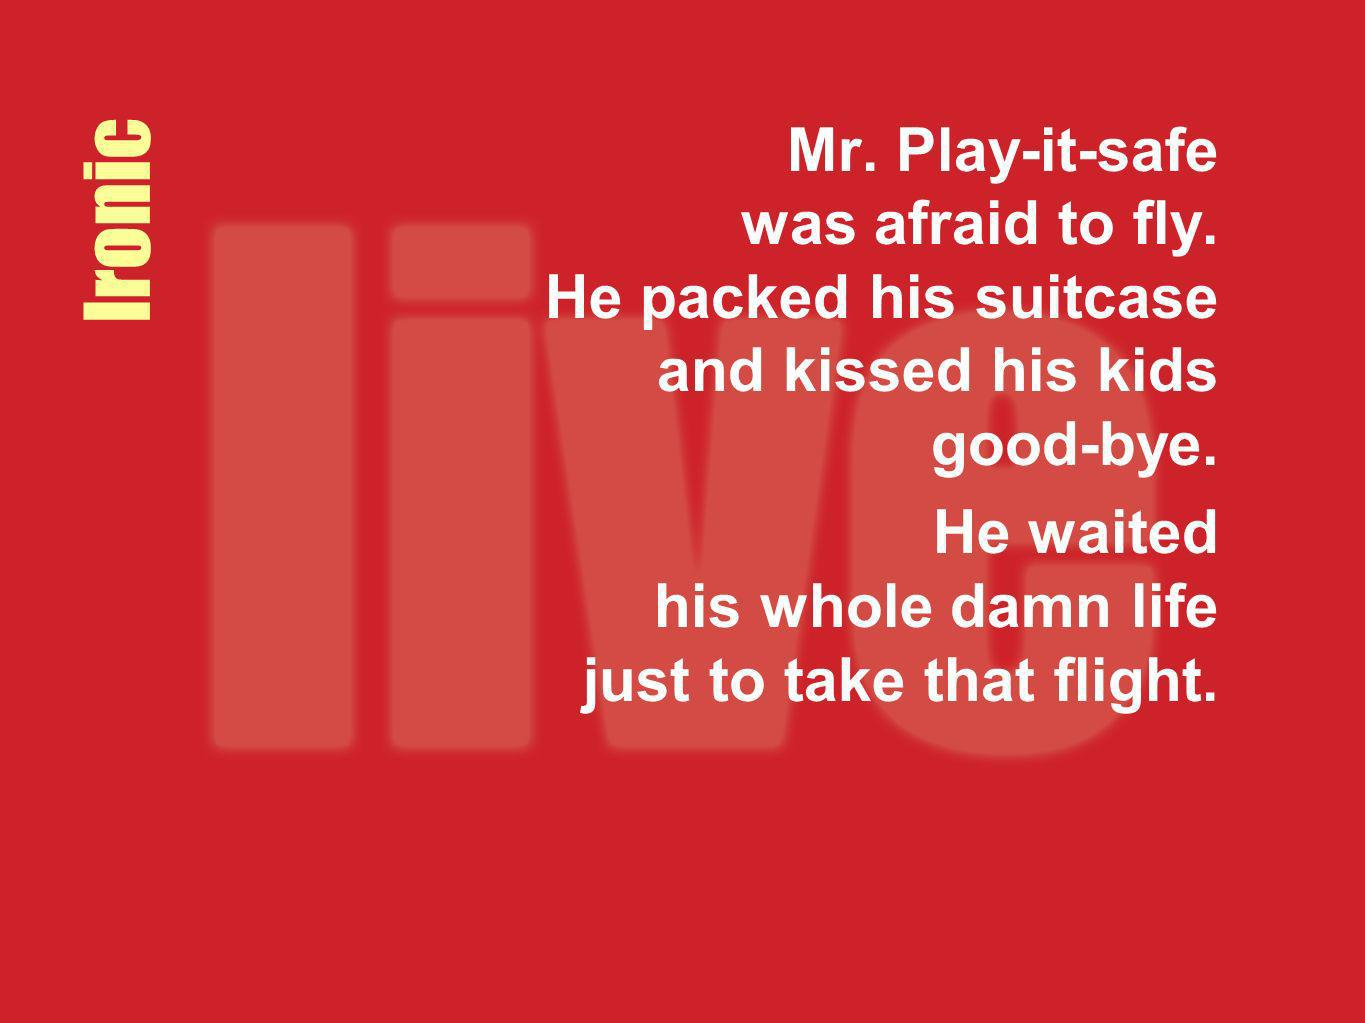 Mr. Play-it-safe was afraid to fly